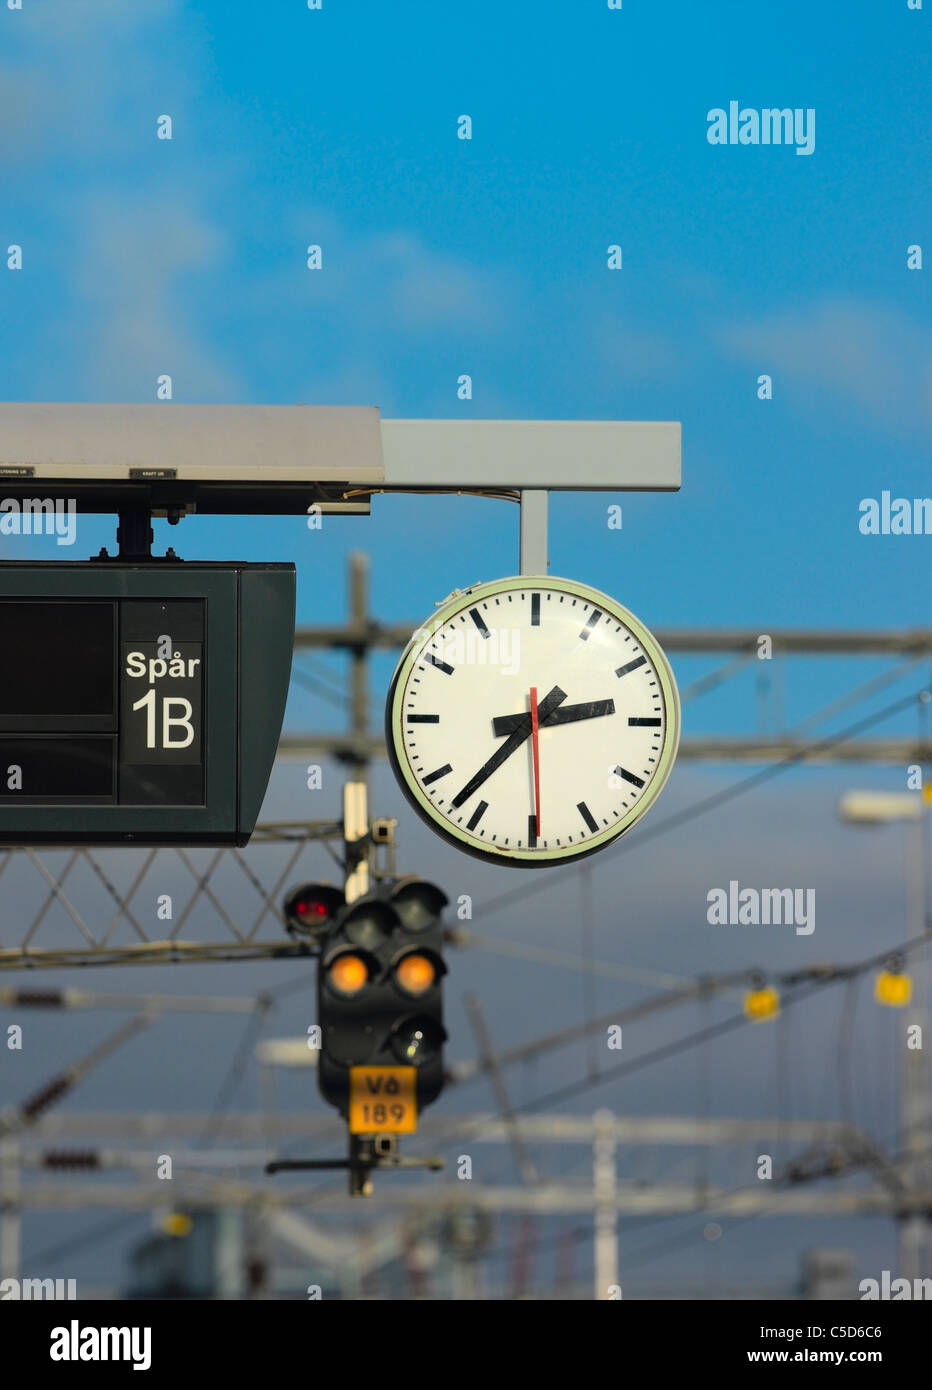 Close-up of a clock at the train station against blue sky - Stock Image